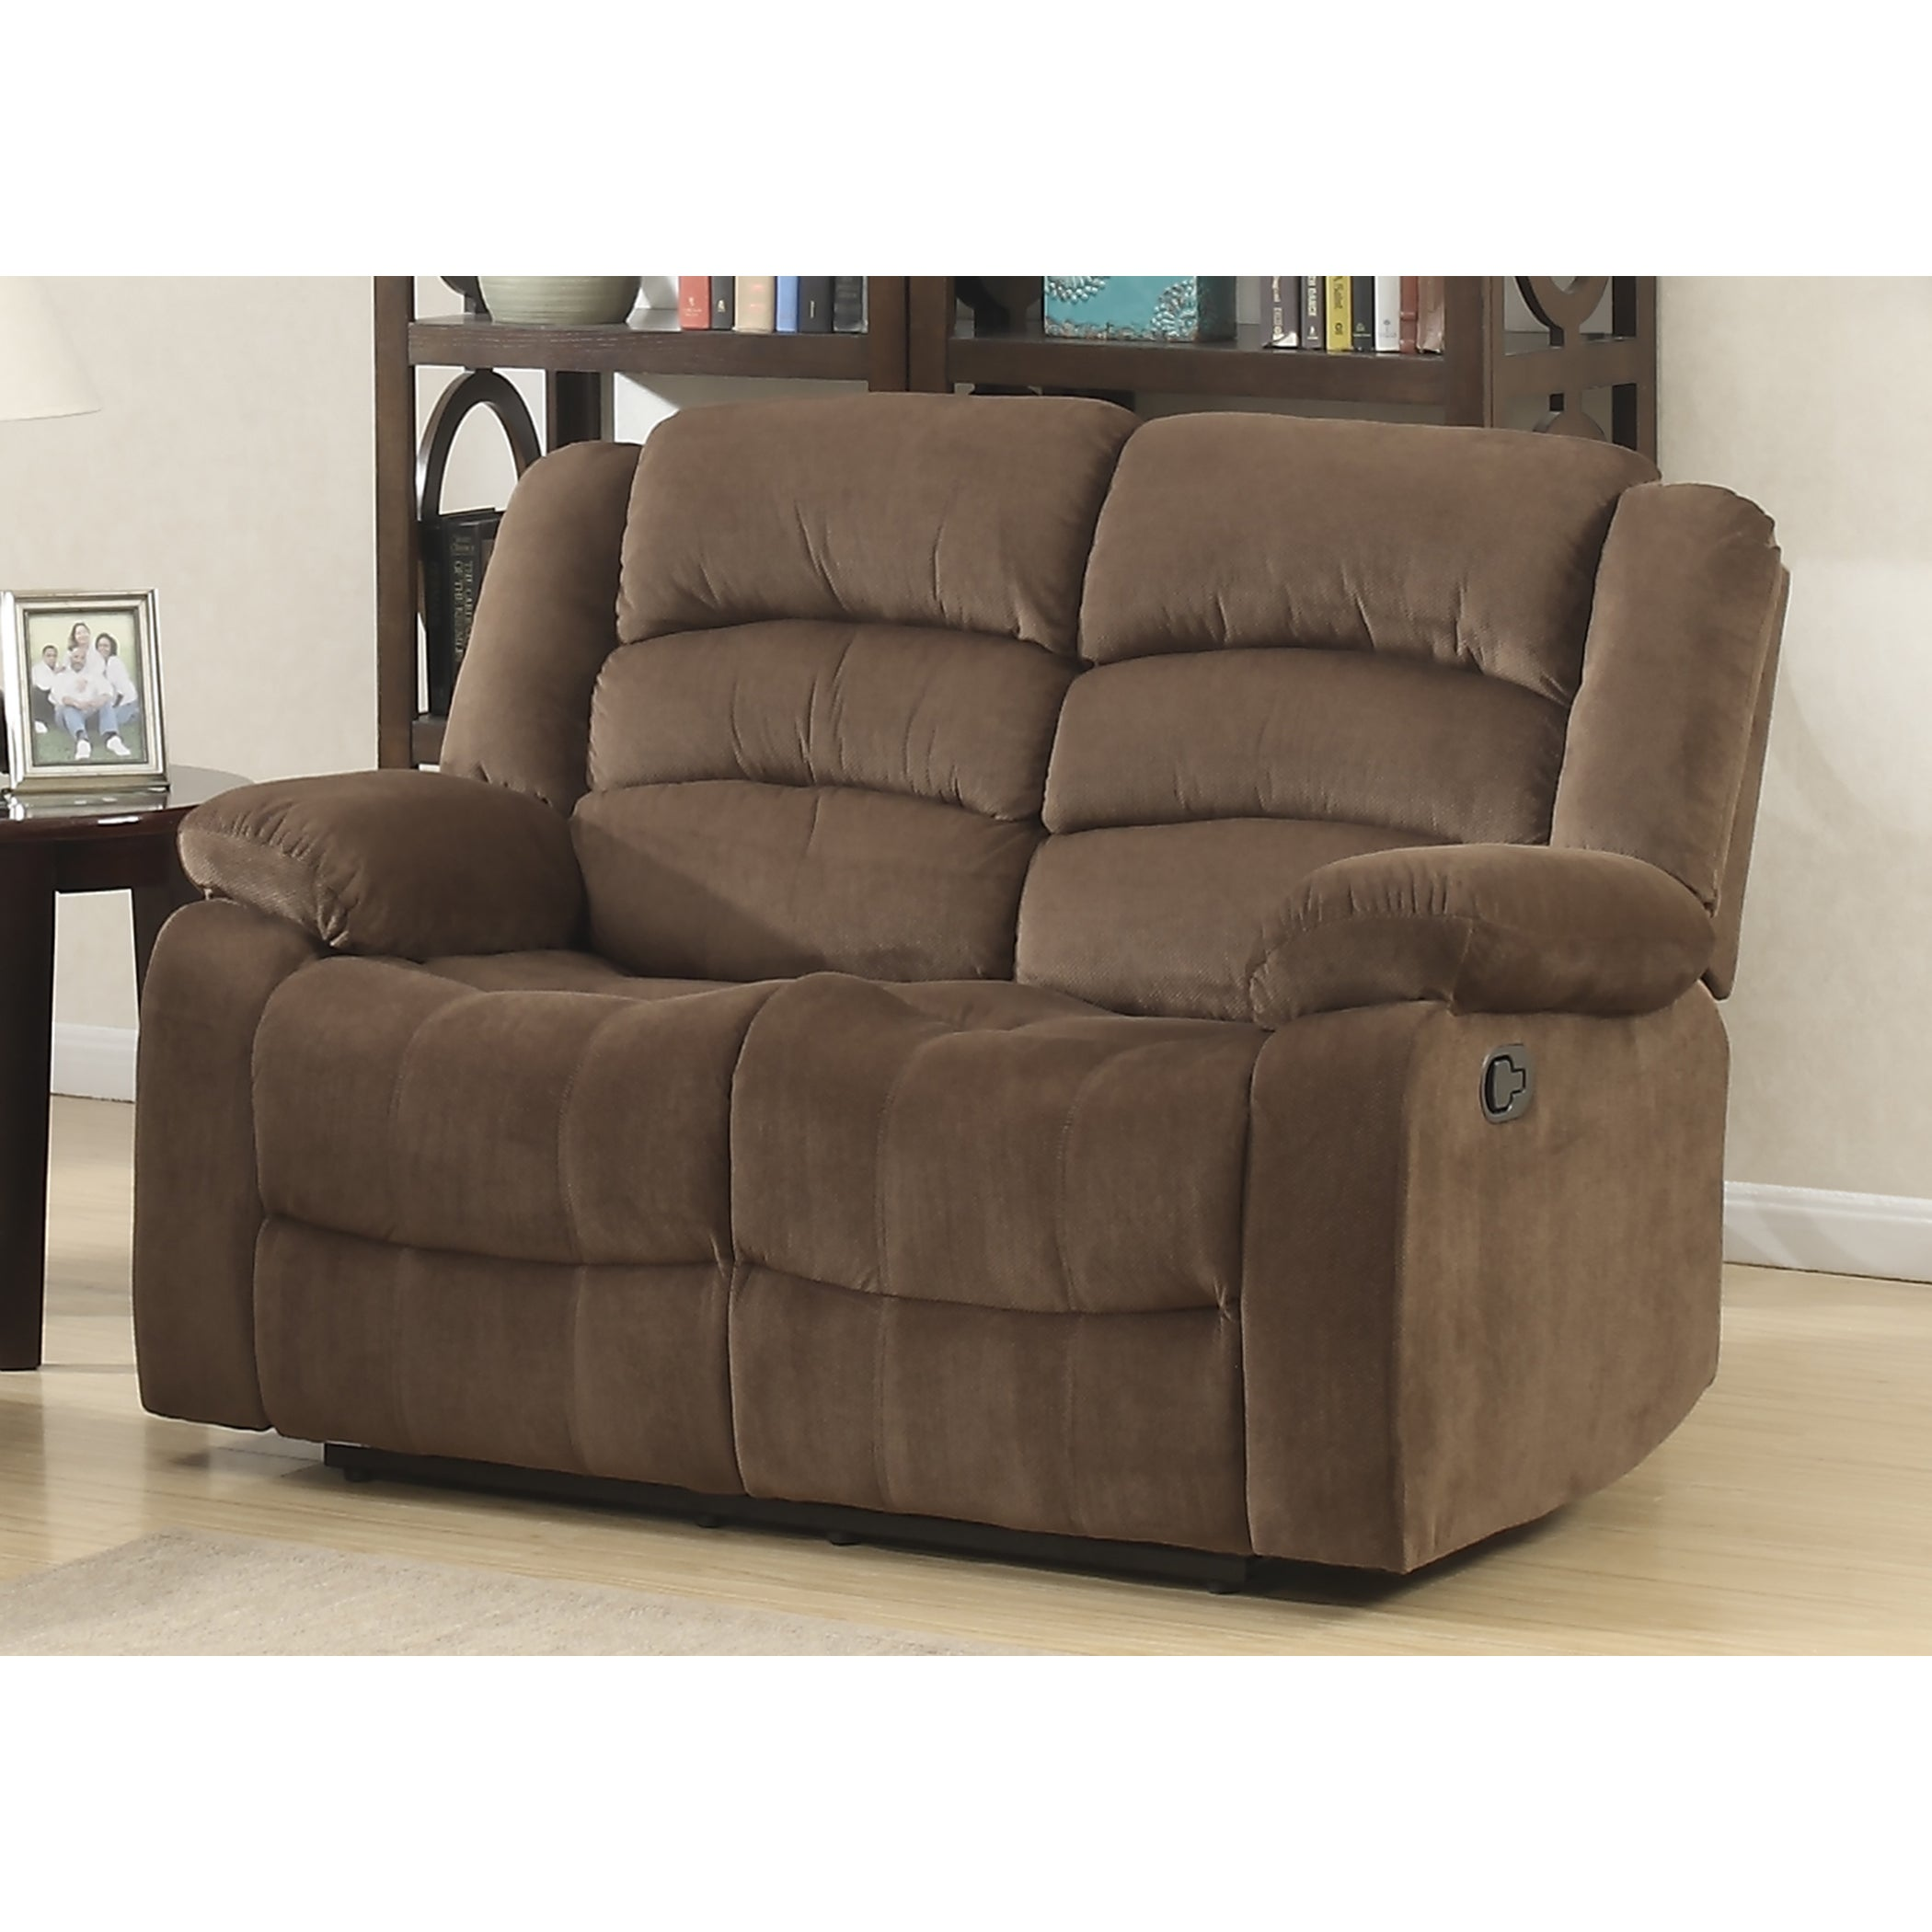 Fabulous Details About Double Recliner Chair Dual Reclining Loveseat Polyester Soft Brown Comfy Tv Room Ibusinesslaw Wood Chair Design Ideas Ibusinesslaworg